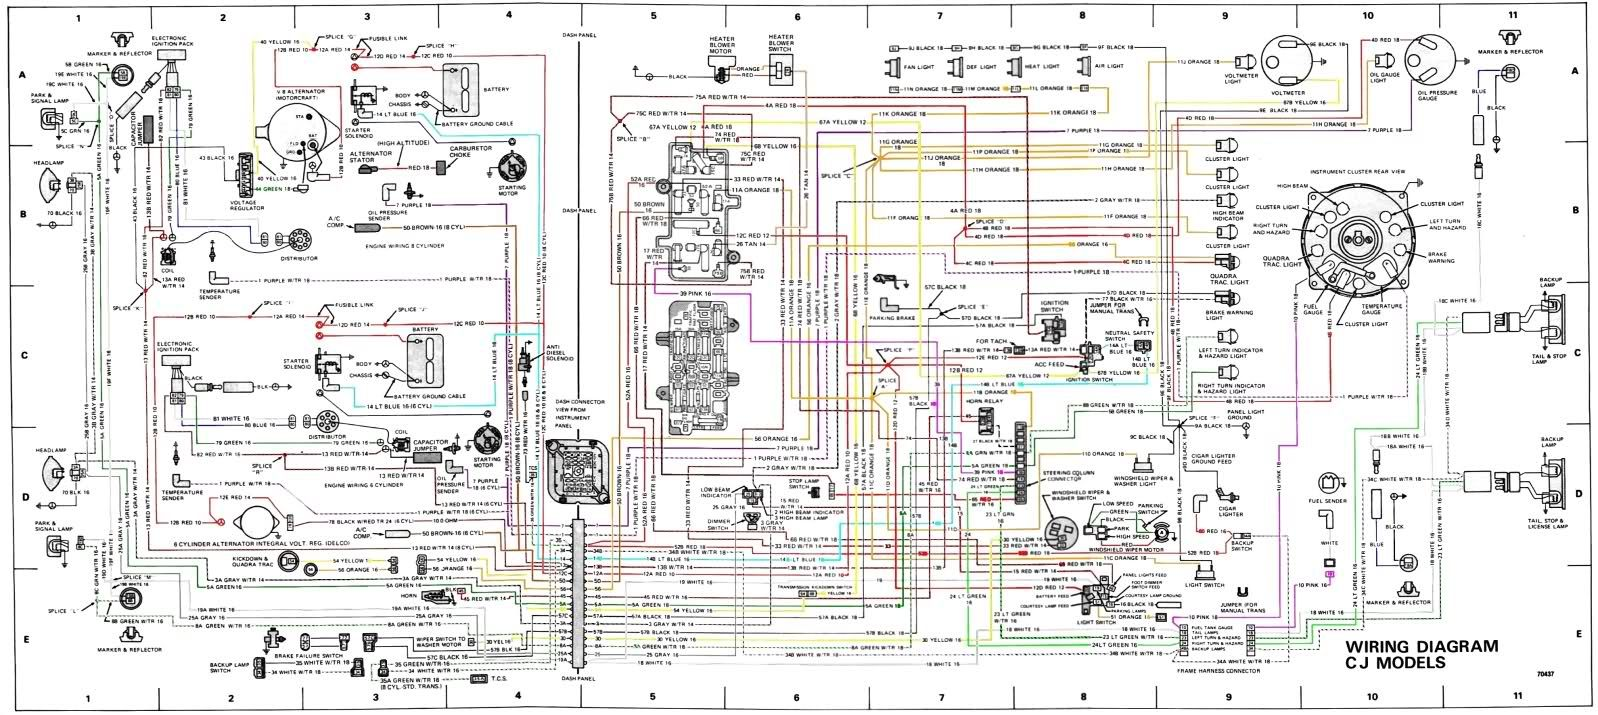 jeep cj wiring diagram light simple wiring diagram schema willys jeep wiring  diagram for a cj